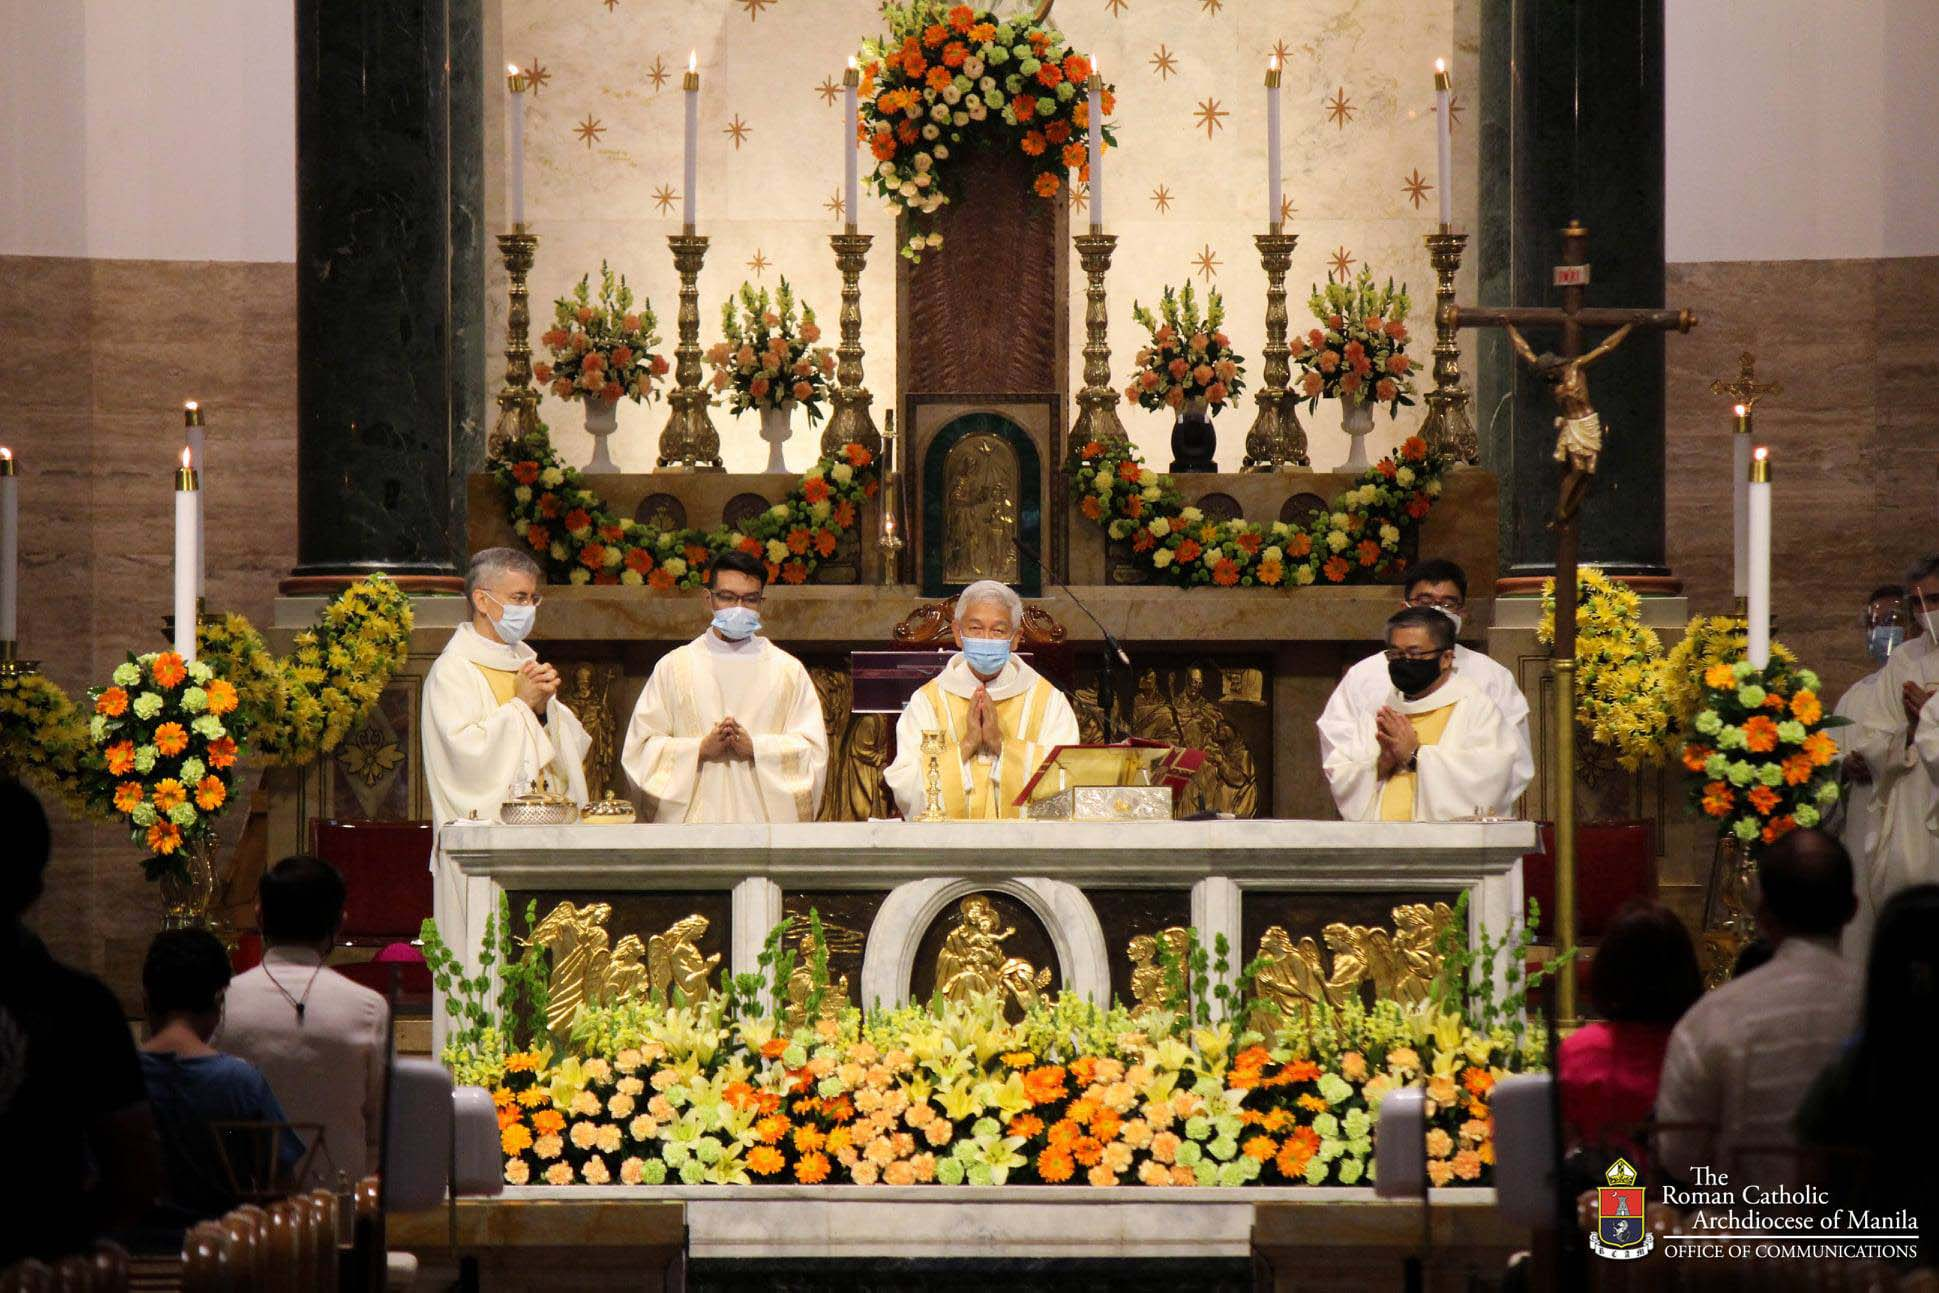 Archdiocese of Manila Commence year-long Celebration of 500 years of Christianity